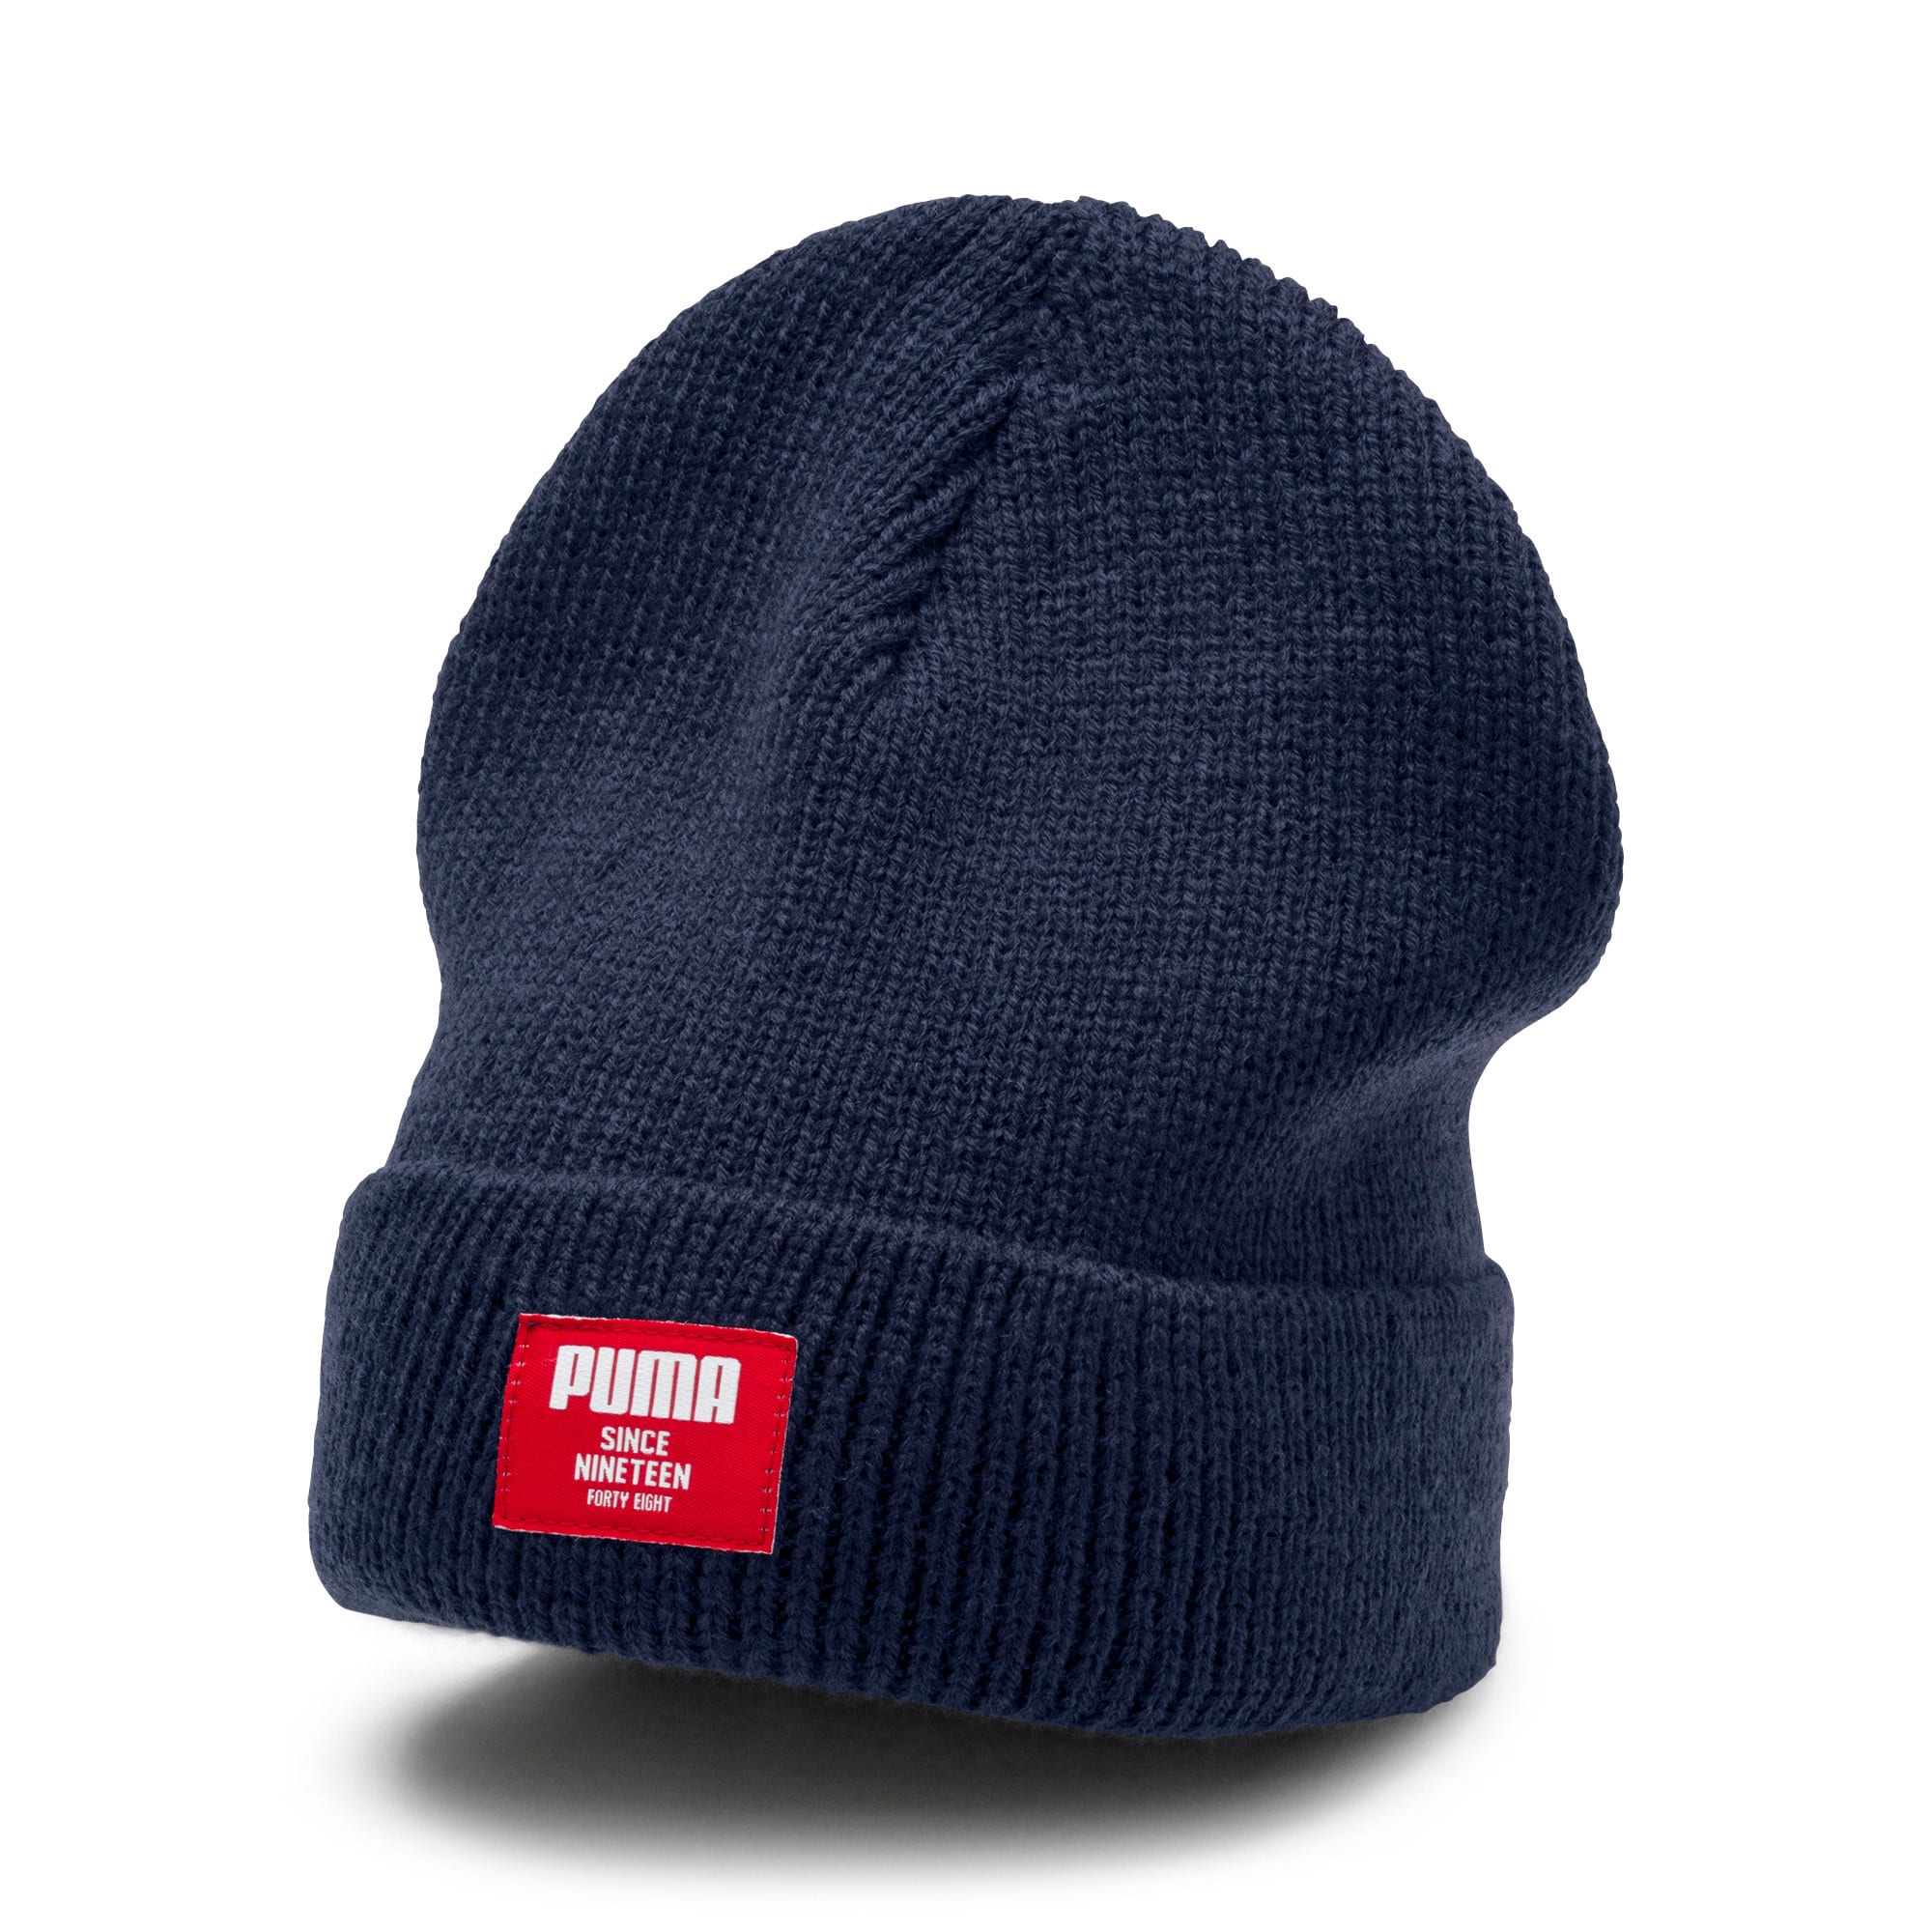 Thumbnail 1 of Classic Ribbed Beanie, Peacoat, medium